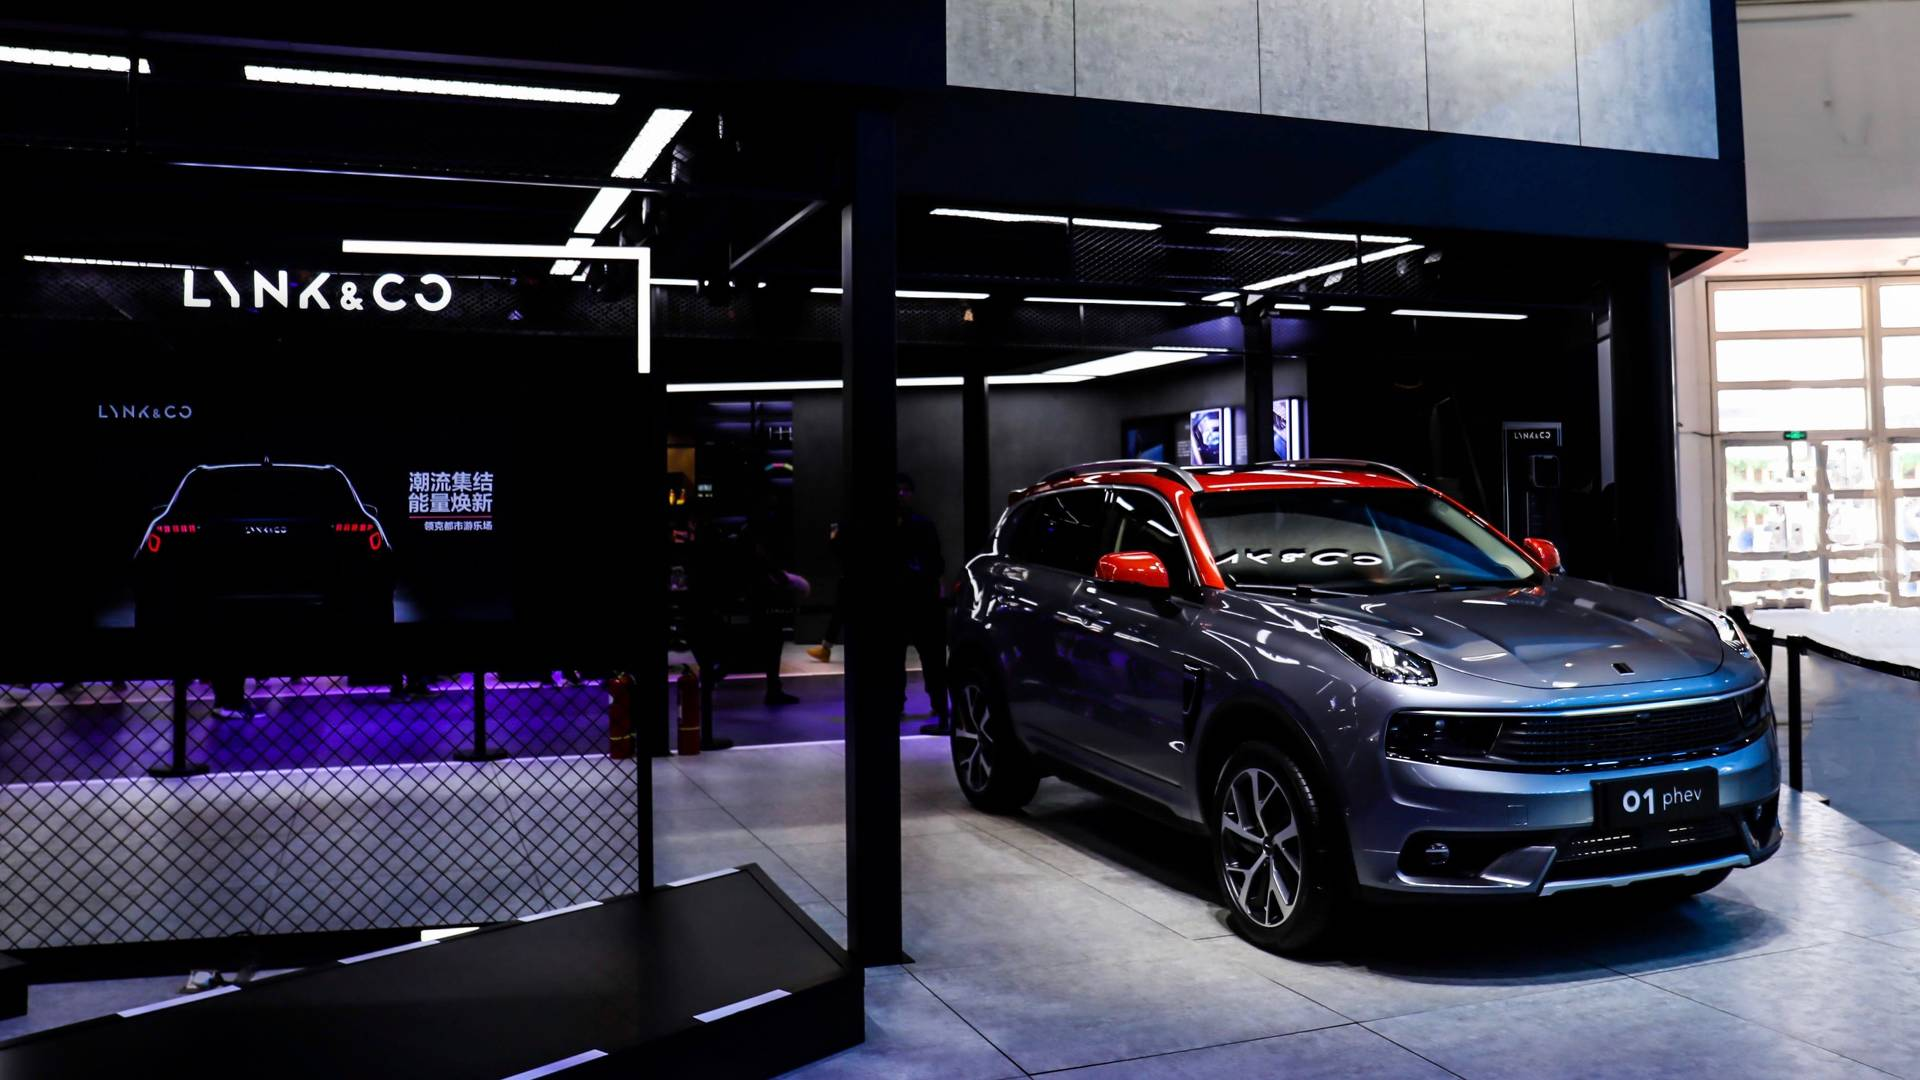 Lynk & Co To Produce Plug-In Cars For Europe In China